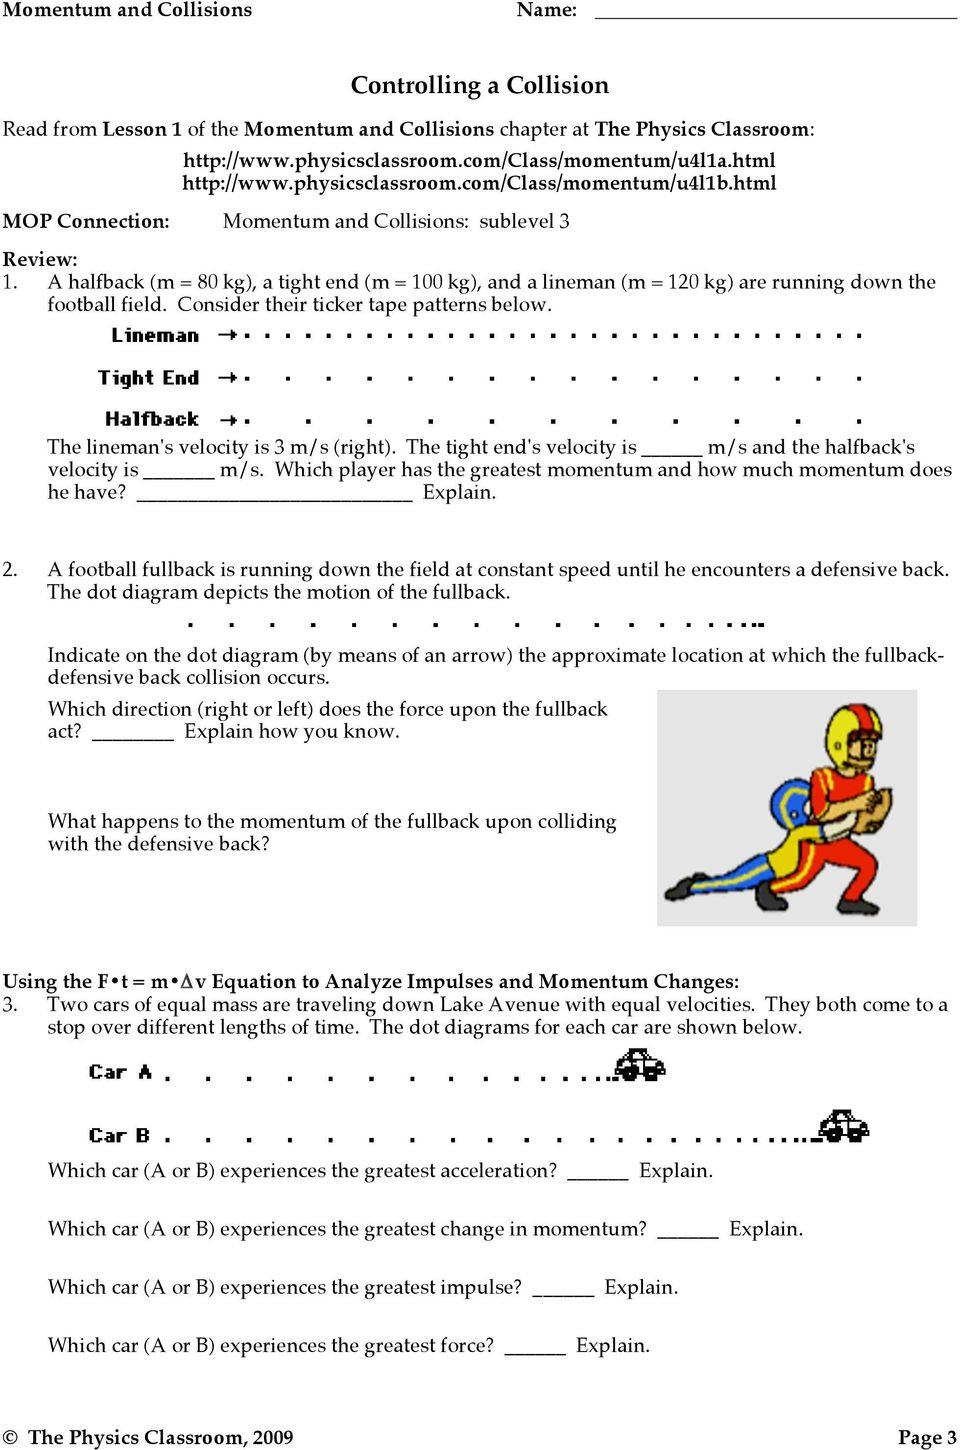 30 Momentum and Collisions Worksheet Answers | Education ...